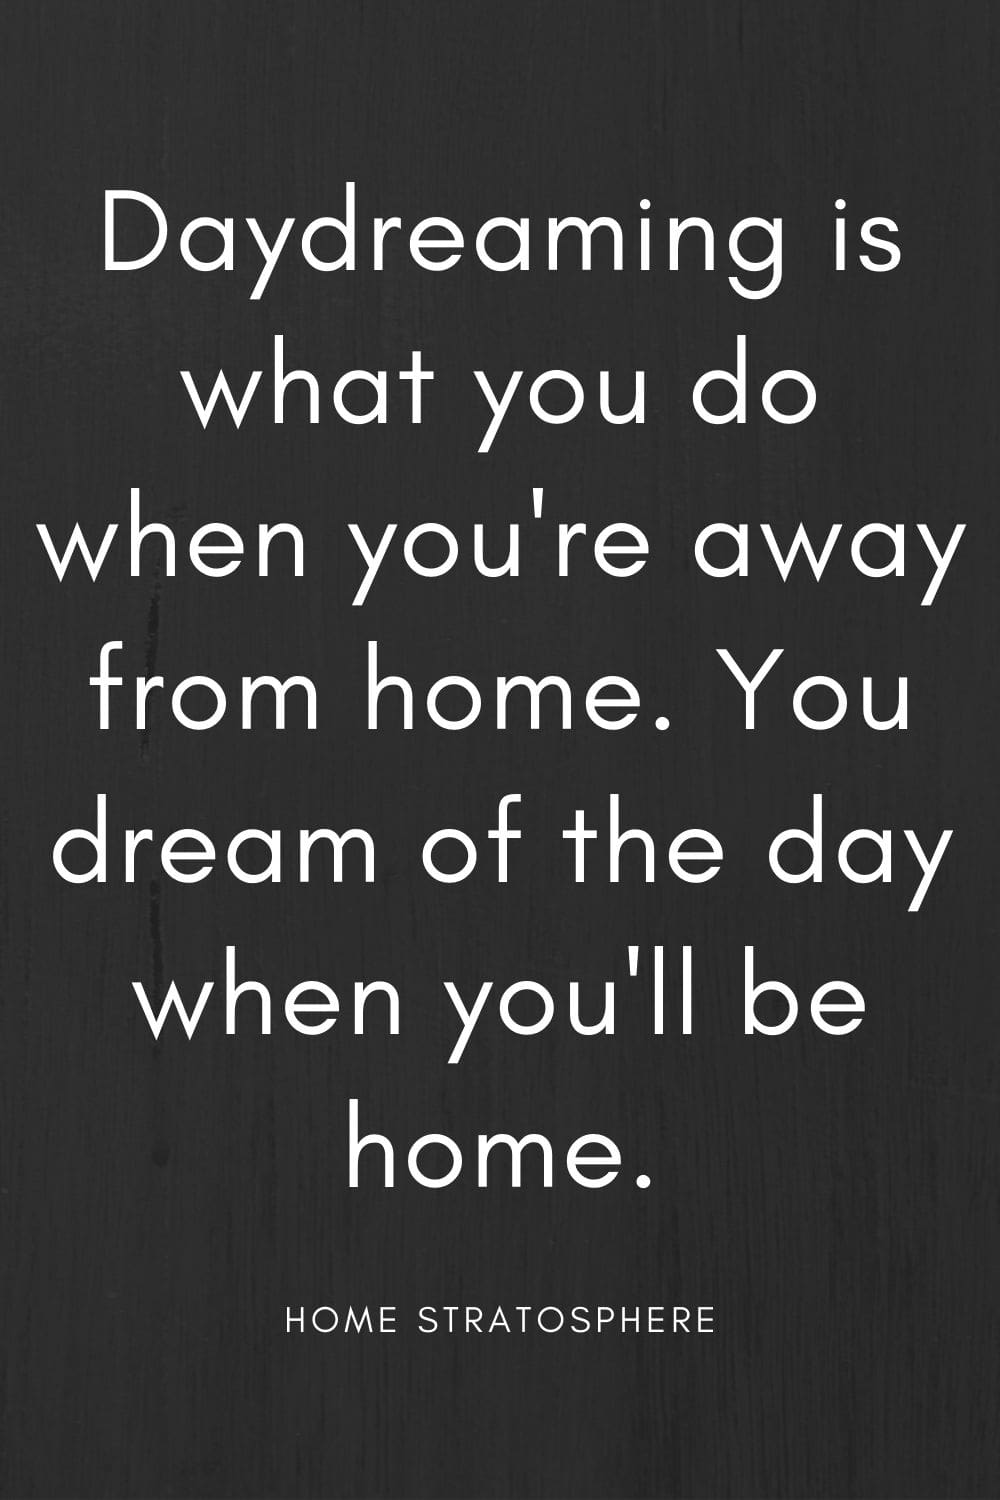 """Daydreaming is what you do when you're away from home. You dream of the day when you'll be home."""